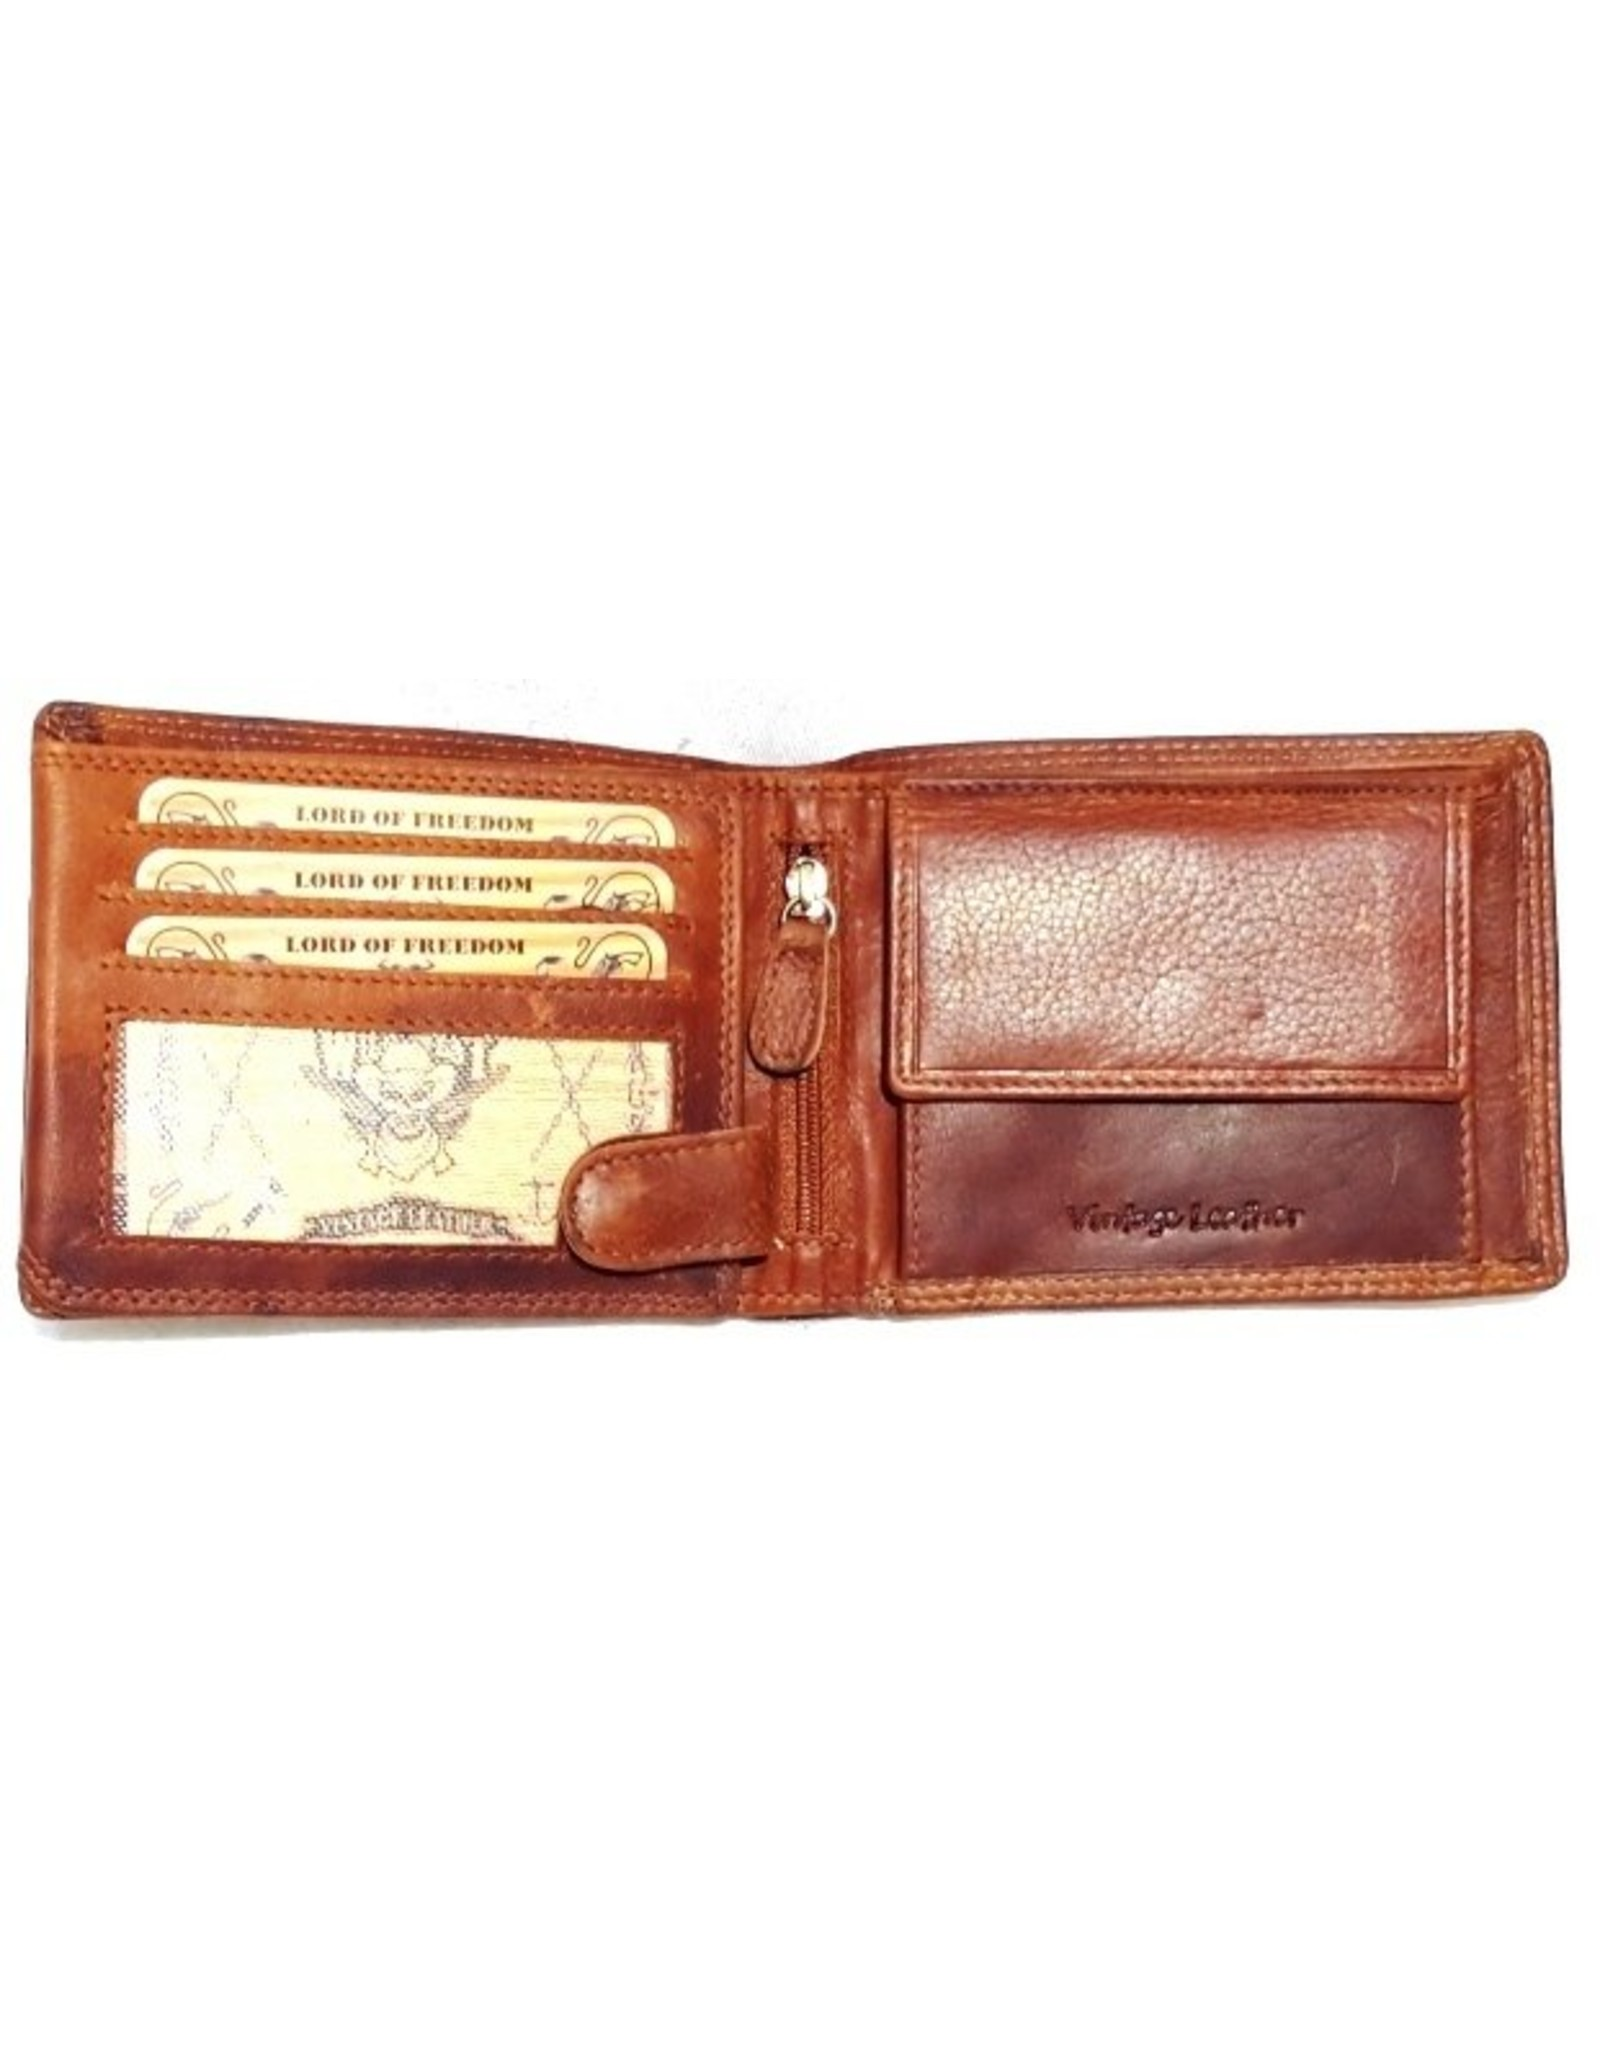 Trukado Leather wallets - Leather Wallet Wild West